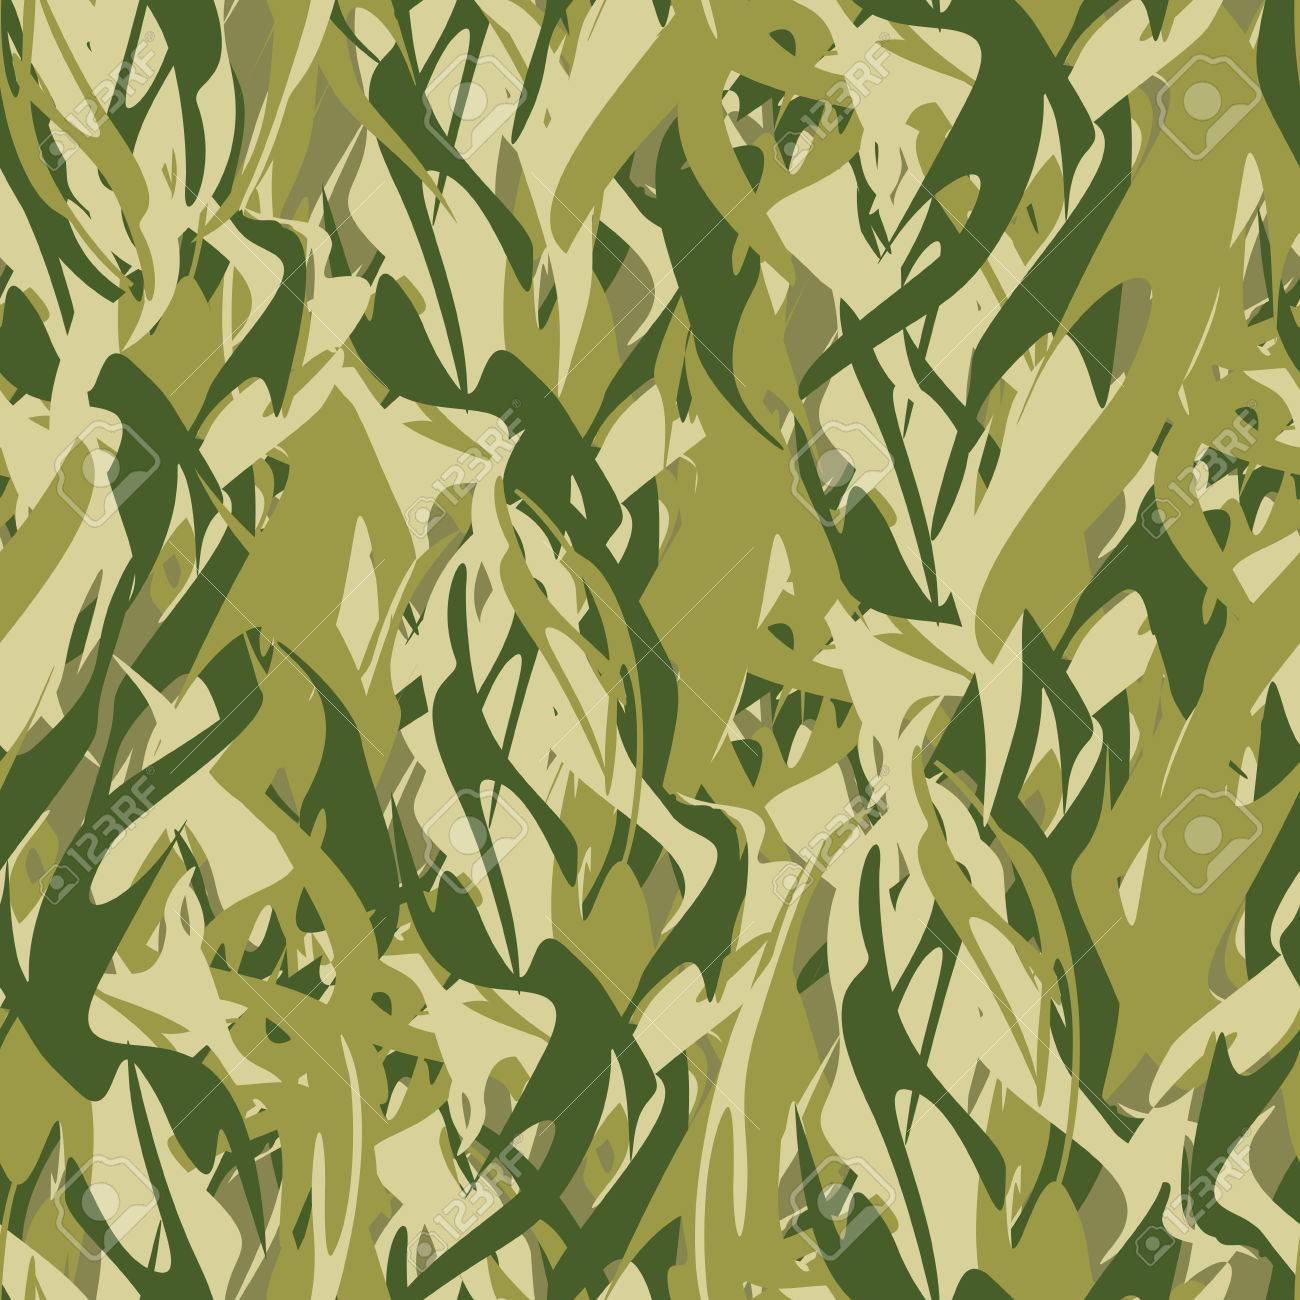 Military Texture In Form Of Fire. Camouflage Army Seamless Flames ...